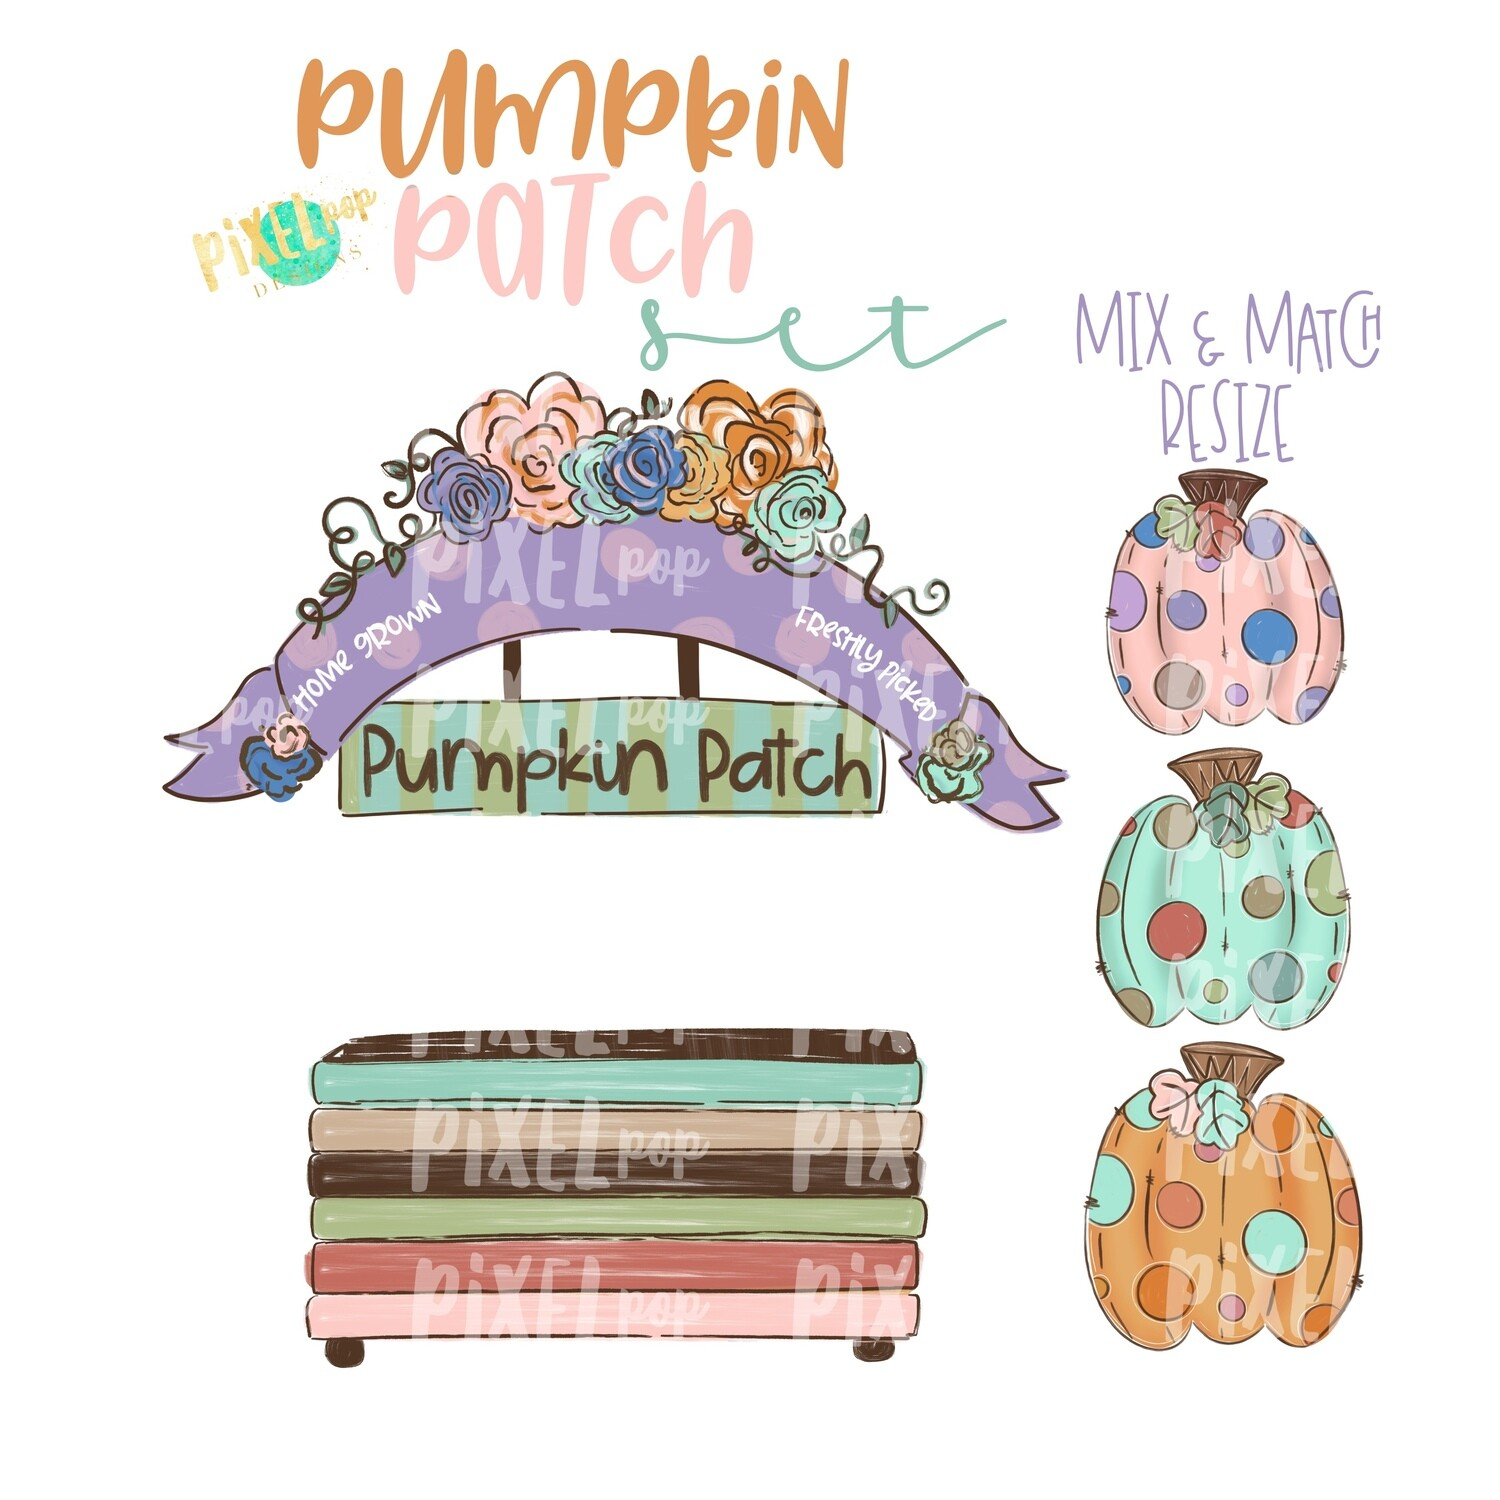 Pumpkin Patch PNG Set with Pumpkin Stand and Pumpkins | Pumpkin Patch Set | Sublimation PNG | Fall | Digital Download | Printable Artwork